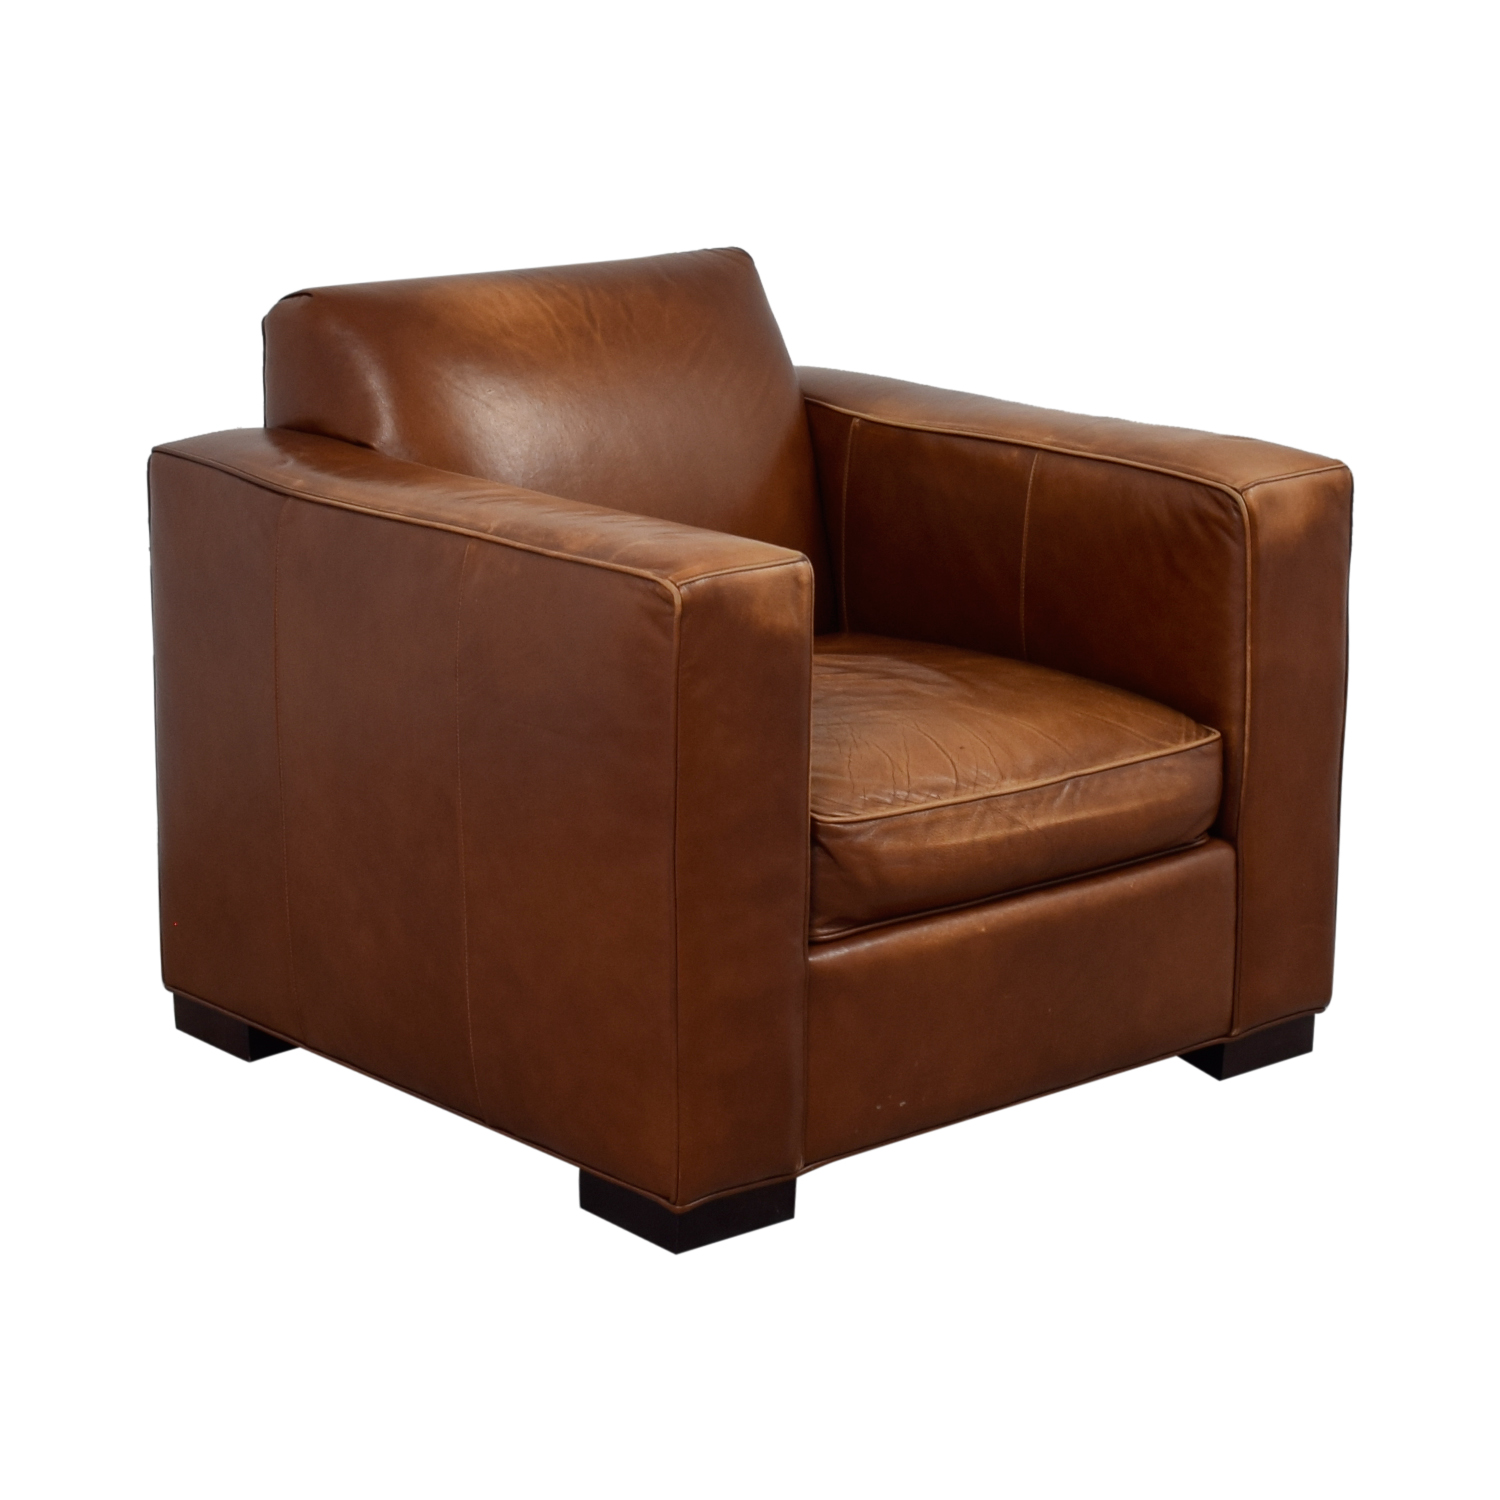 shop Room & Board Room & Board Ian Saddle Leather Armchair online